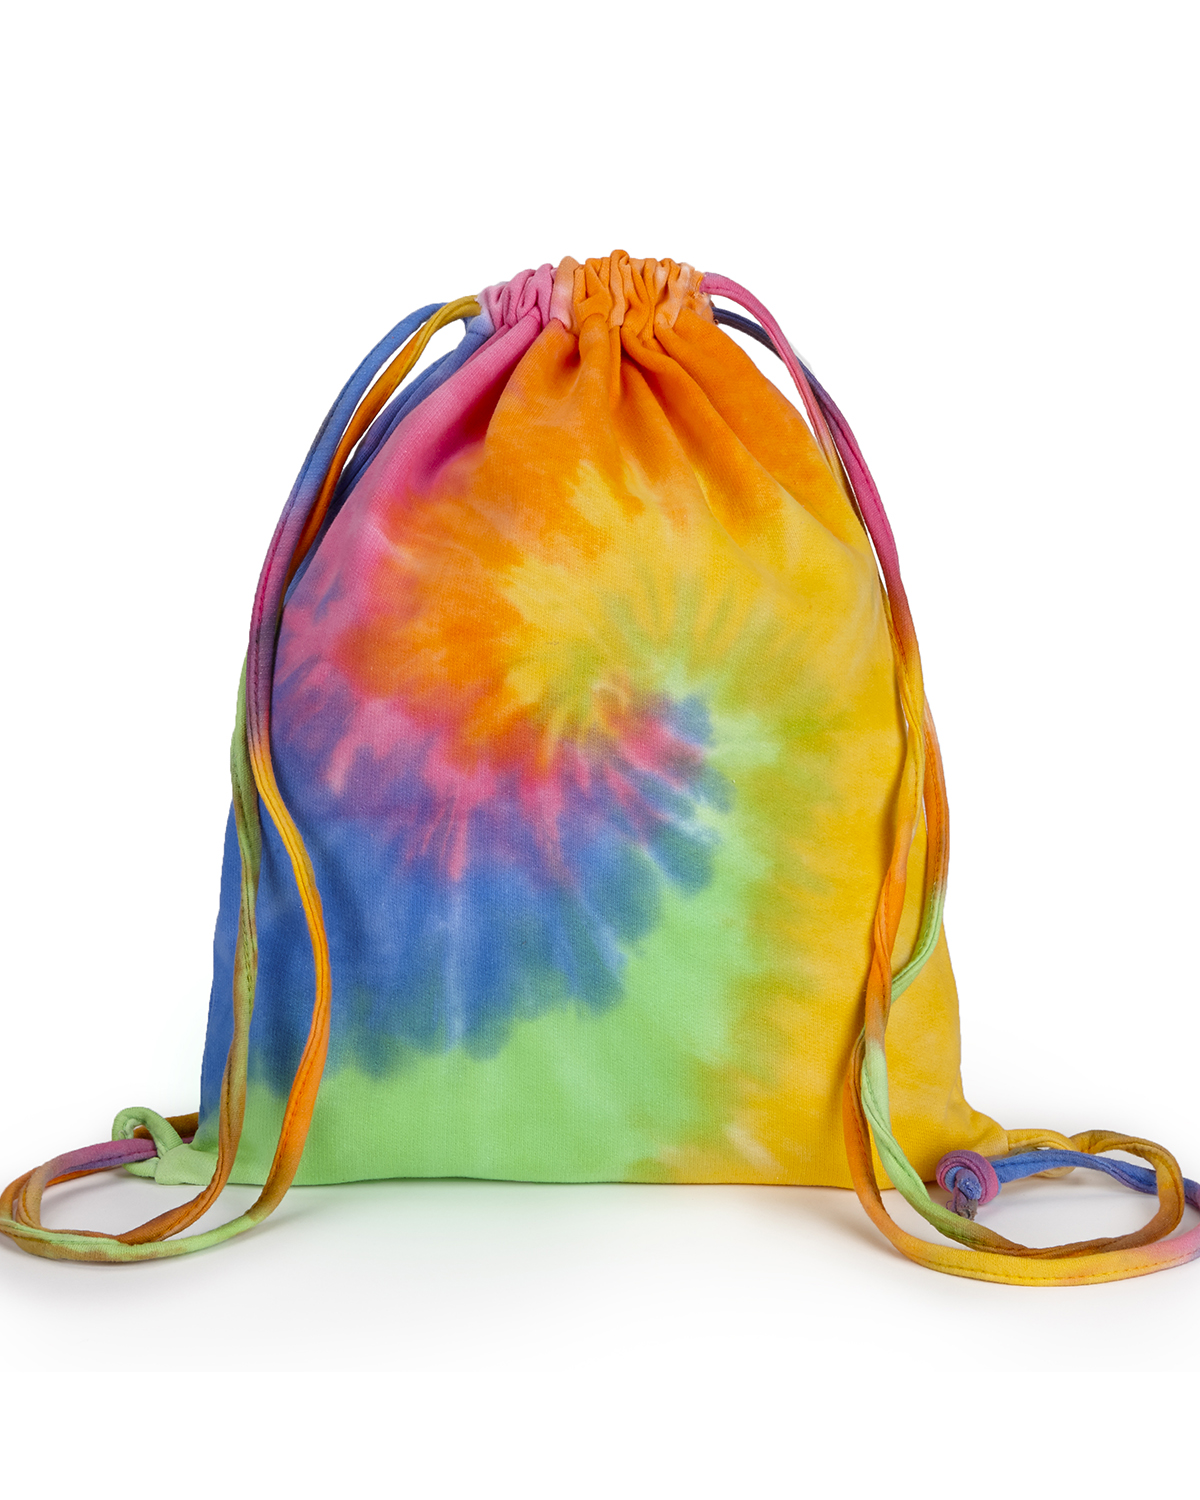 Tie-Dyed CD9500 - Swirl Tie-Dyed Sport Pack